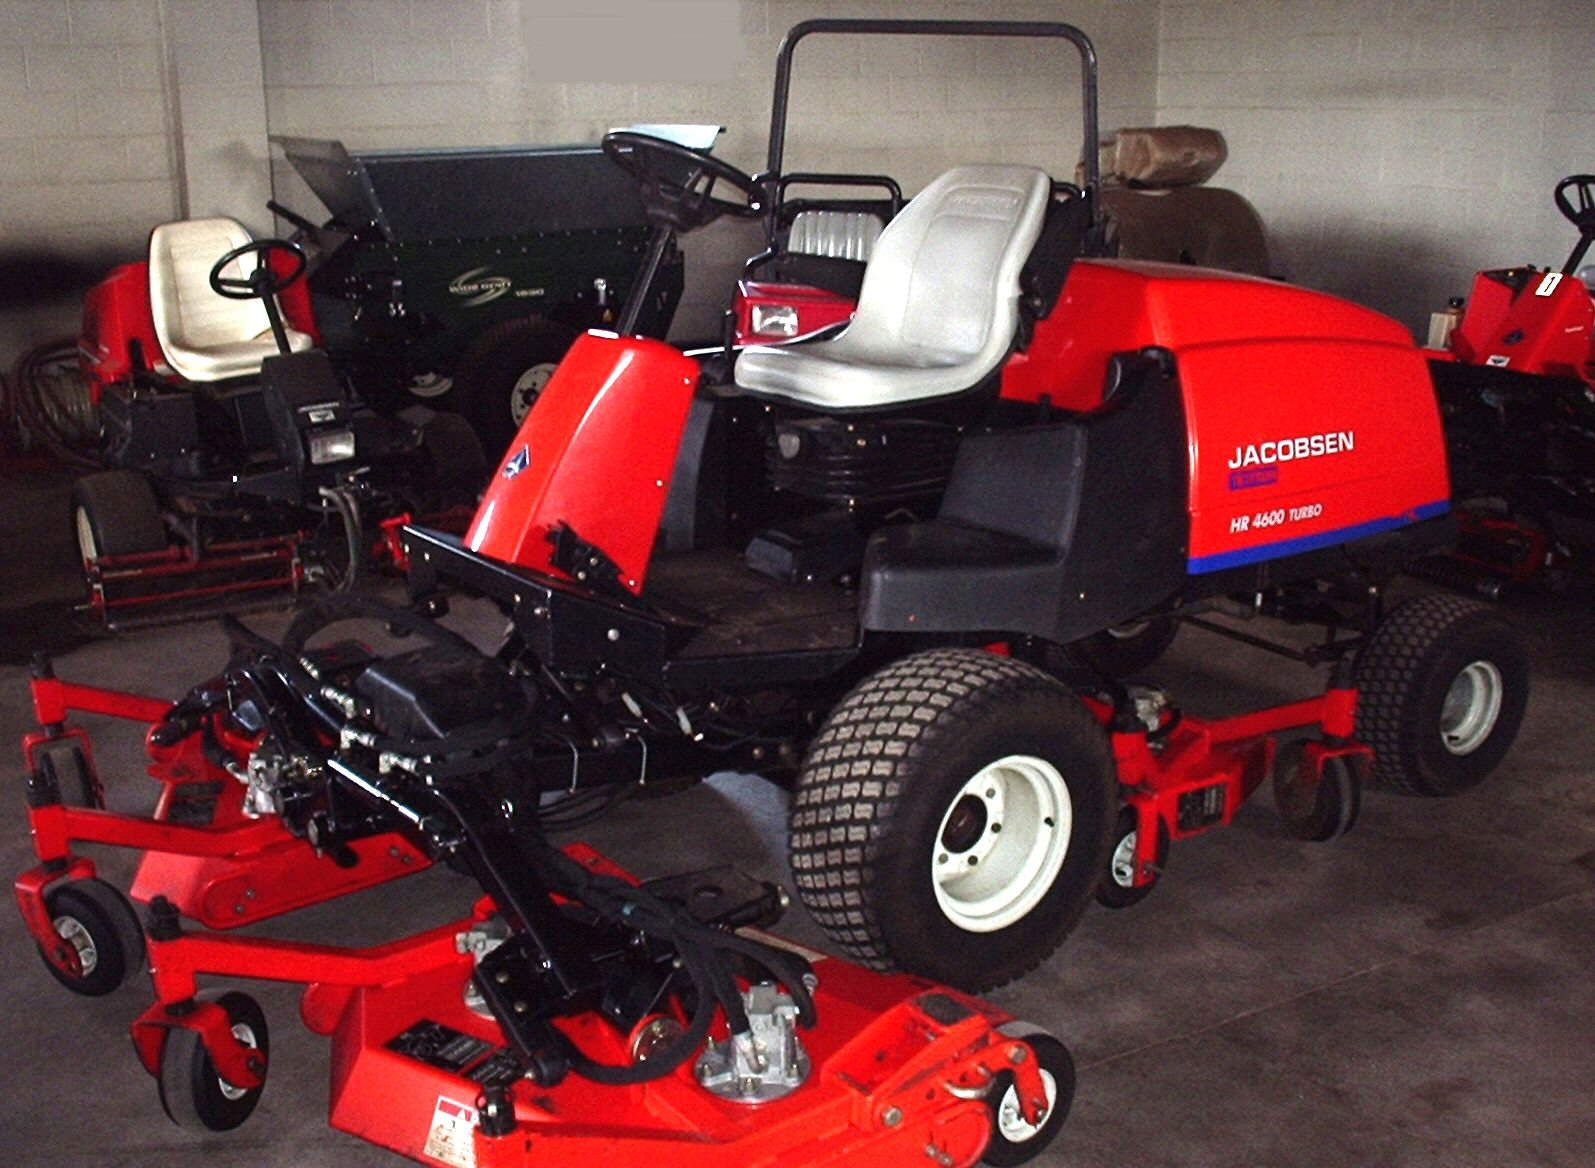 hight resolution of sanford alderfer auction company golf course turf equipment auction gallery of photos